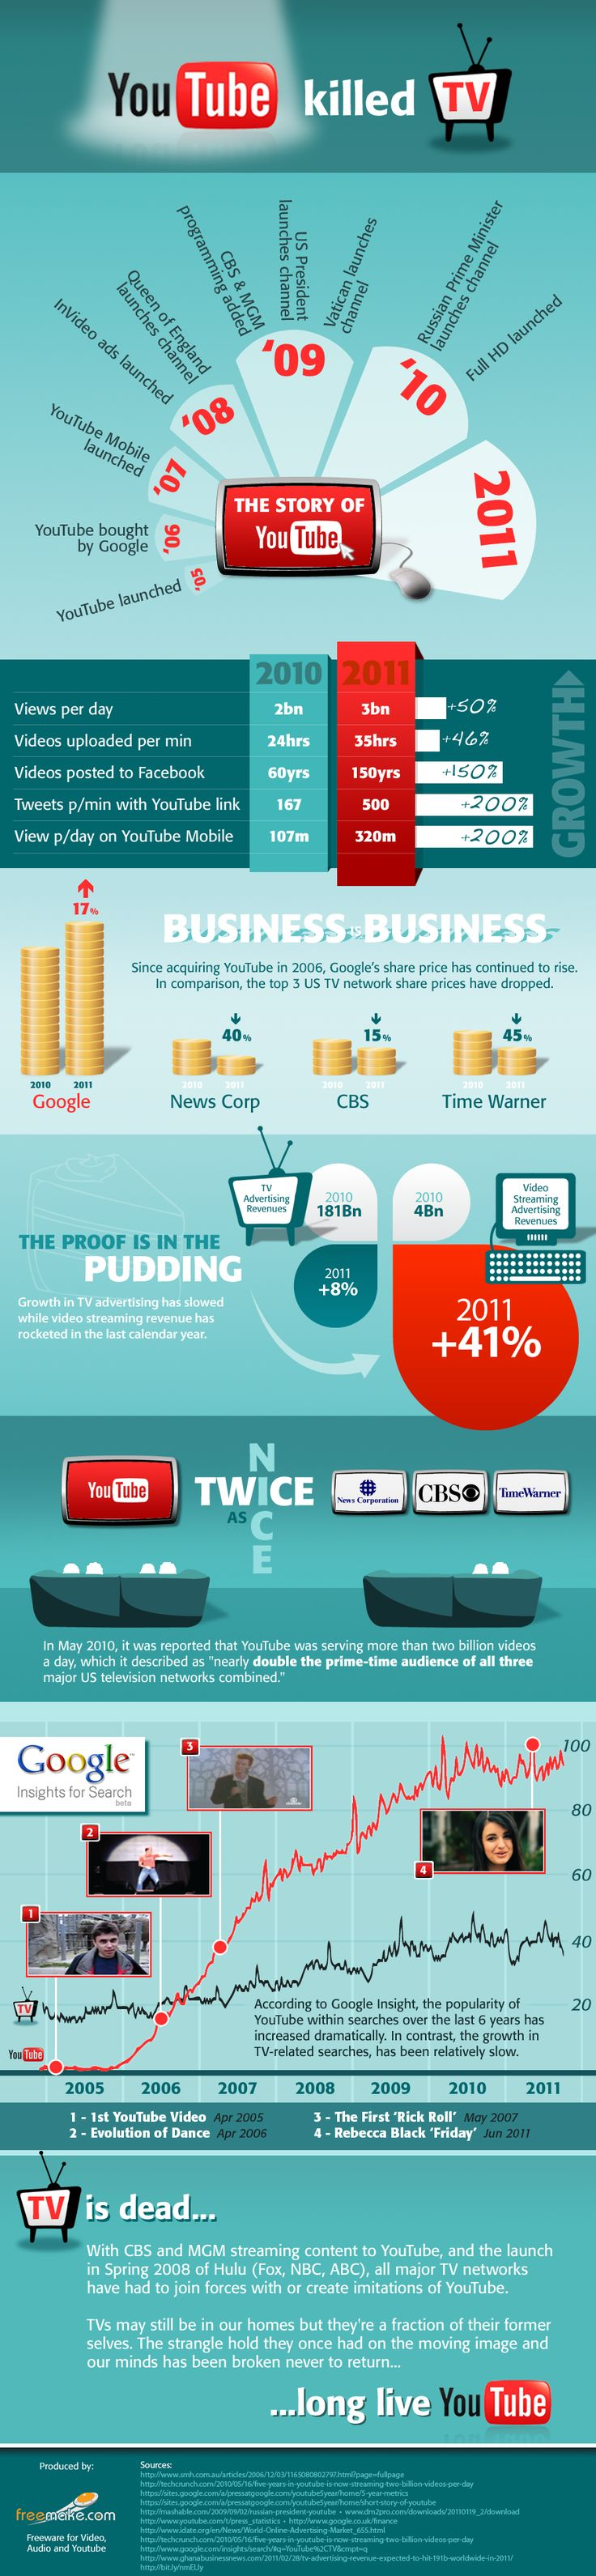 You Tube Killed The TV [Infographics] - Expand Your Brand Marketing Branding Consultant Company Strategy Business Identity Management Consulting Value Creation Design Online Internet Video Productions Social Marketing Agency Social Media Facebook Twitter Pinterest LinkedIn Connections Advertising Strategic Planning Photography Www.effortlessvideo.co.uk